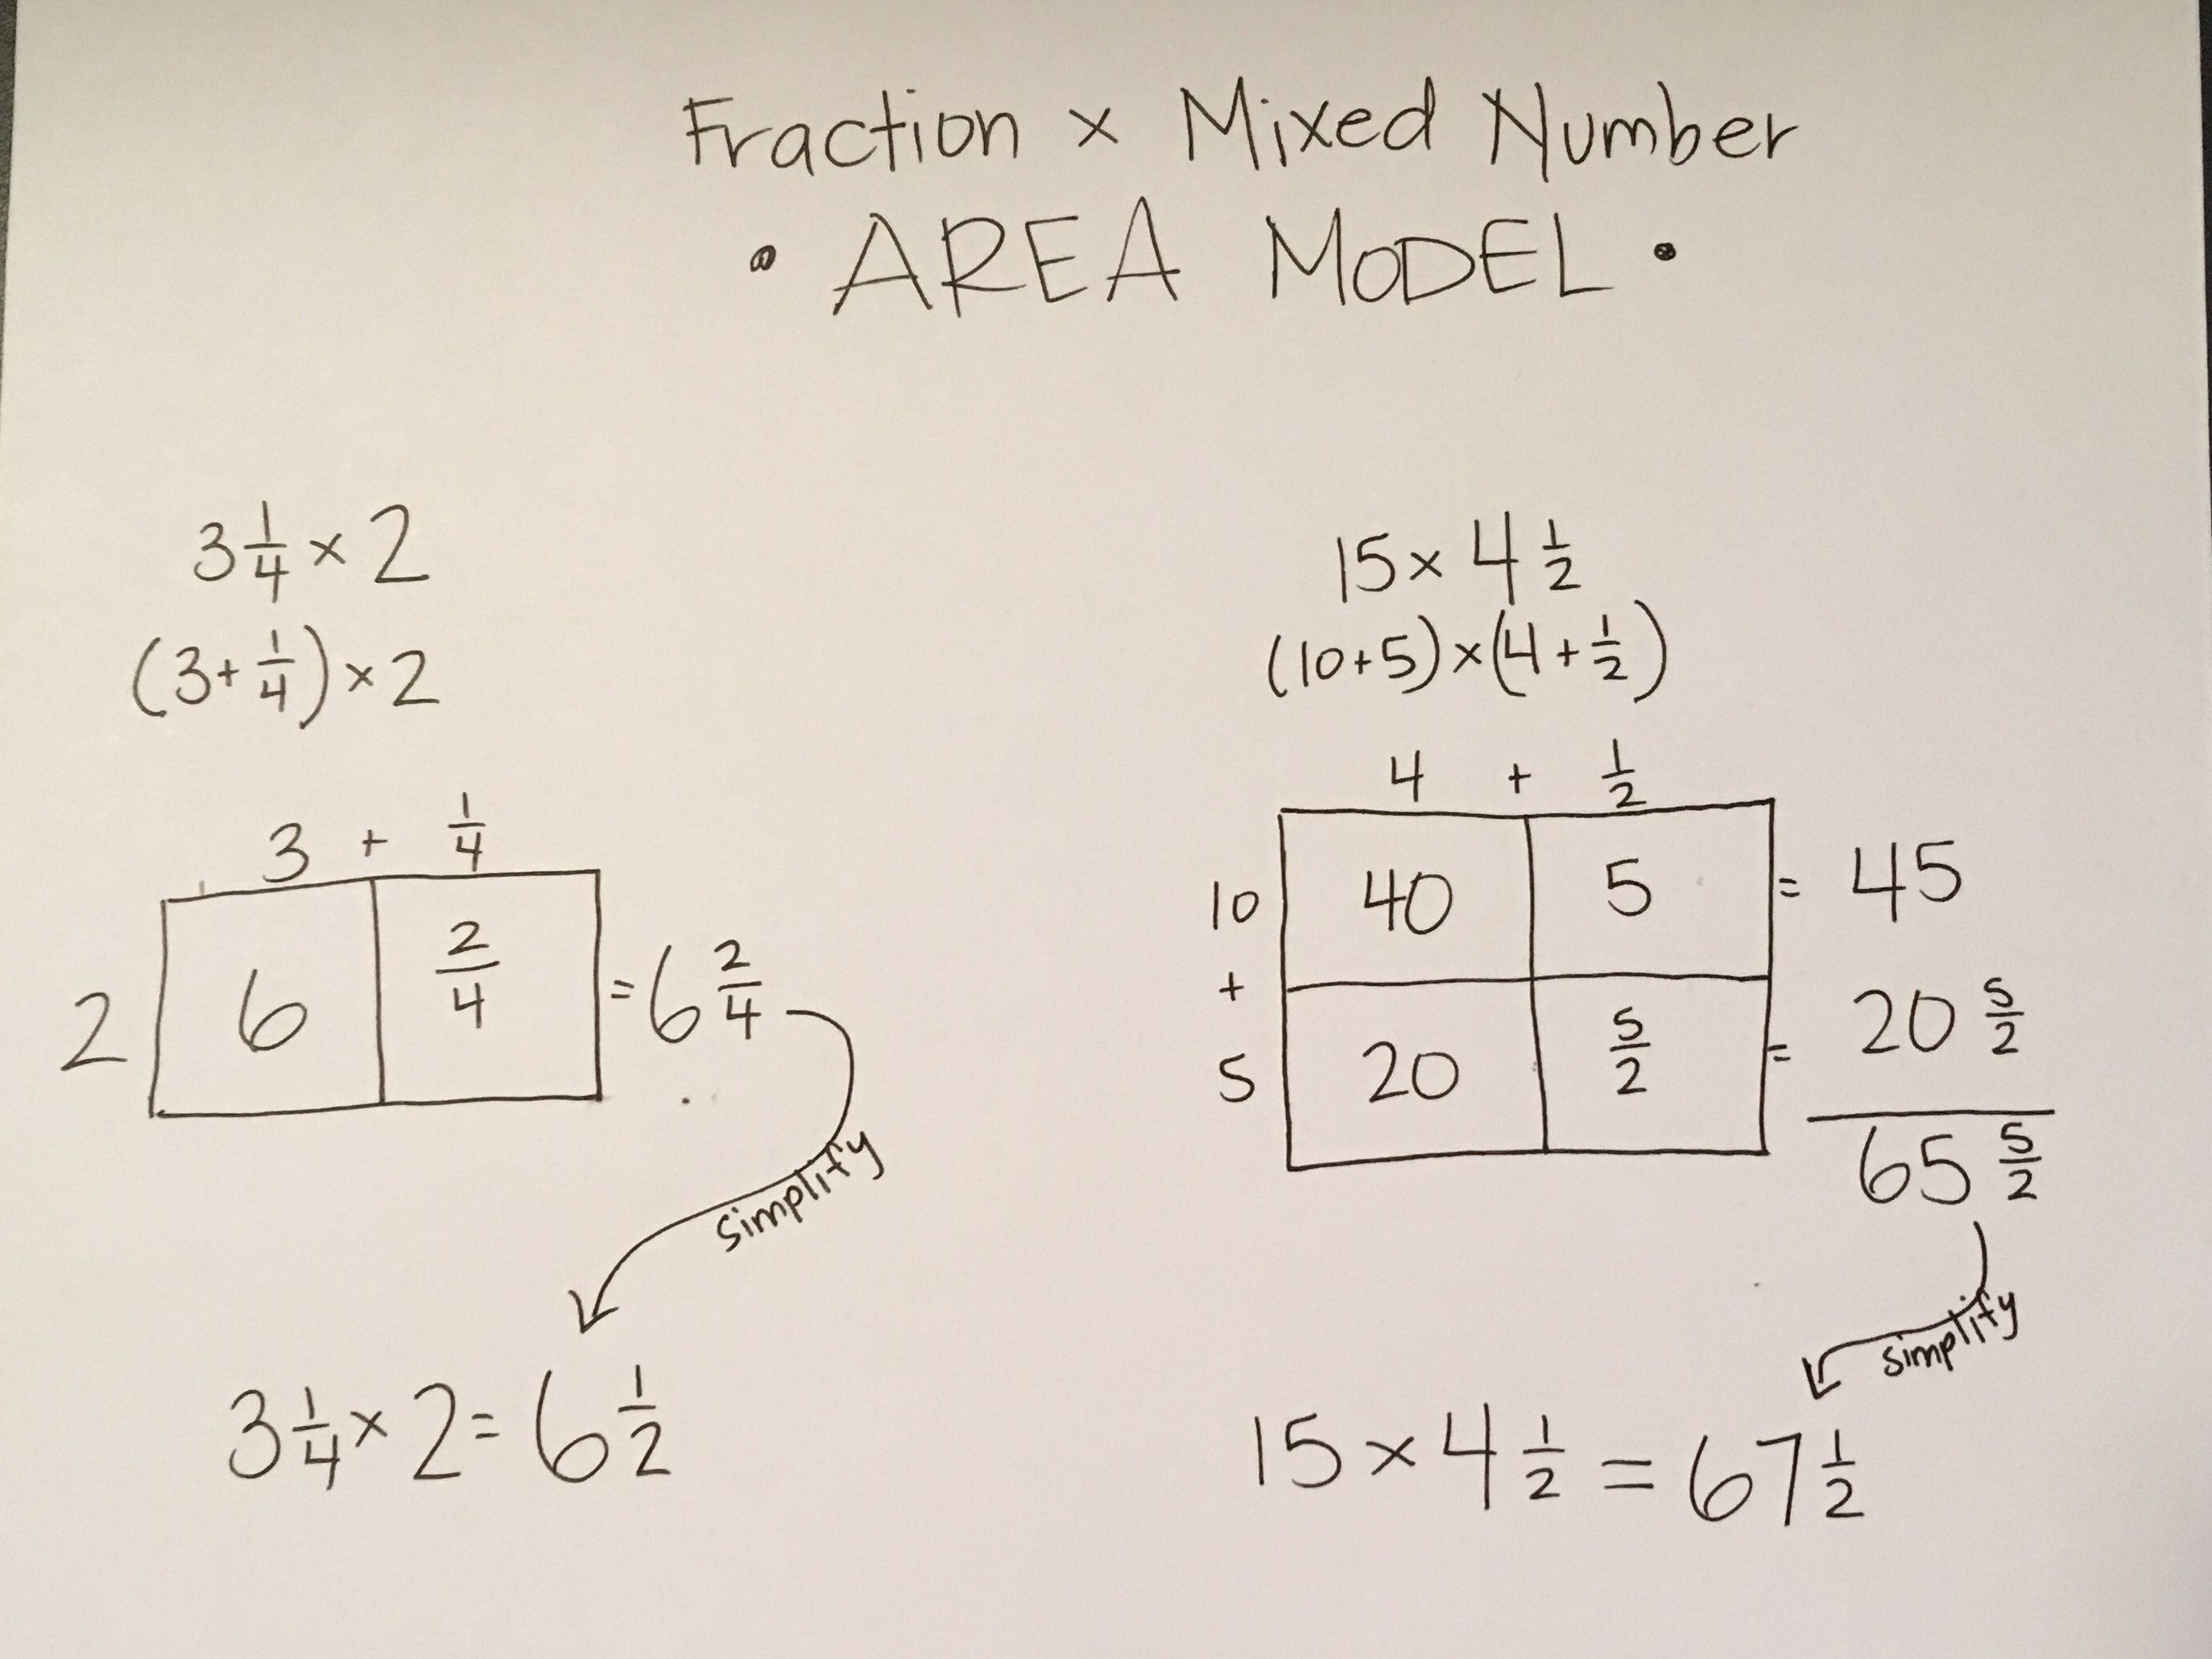 Area Models For Mixed Numbers X Whole Numbers